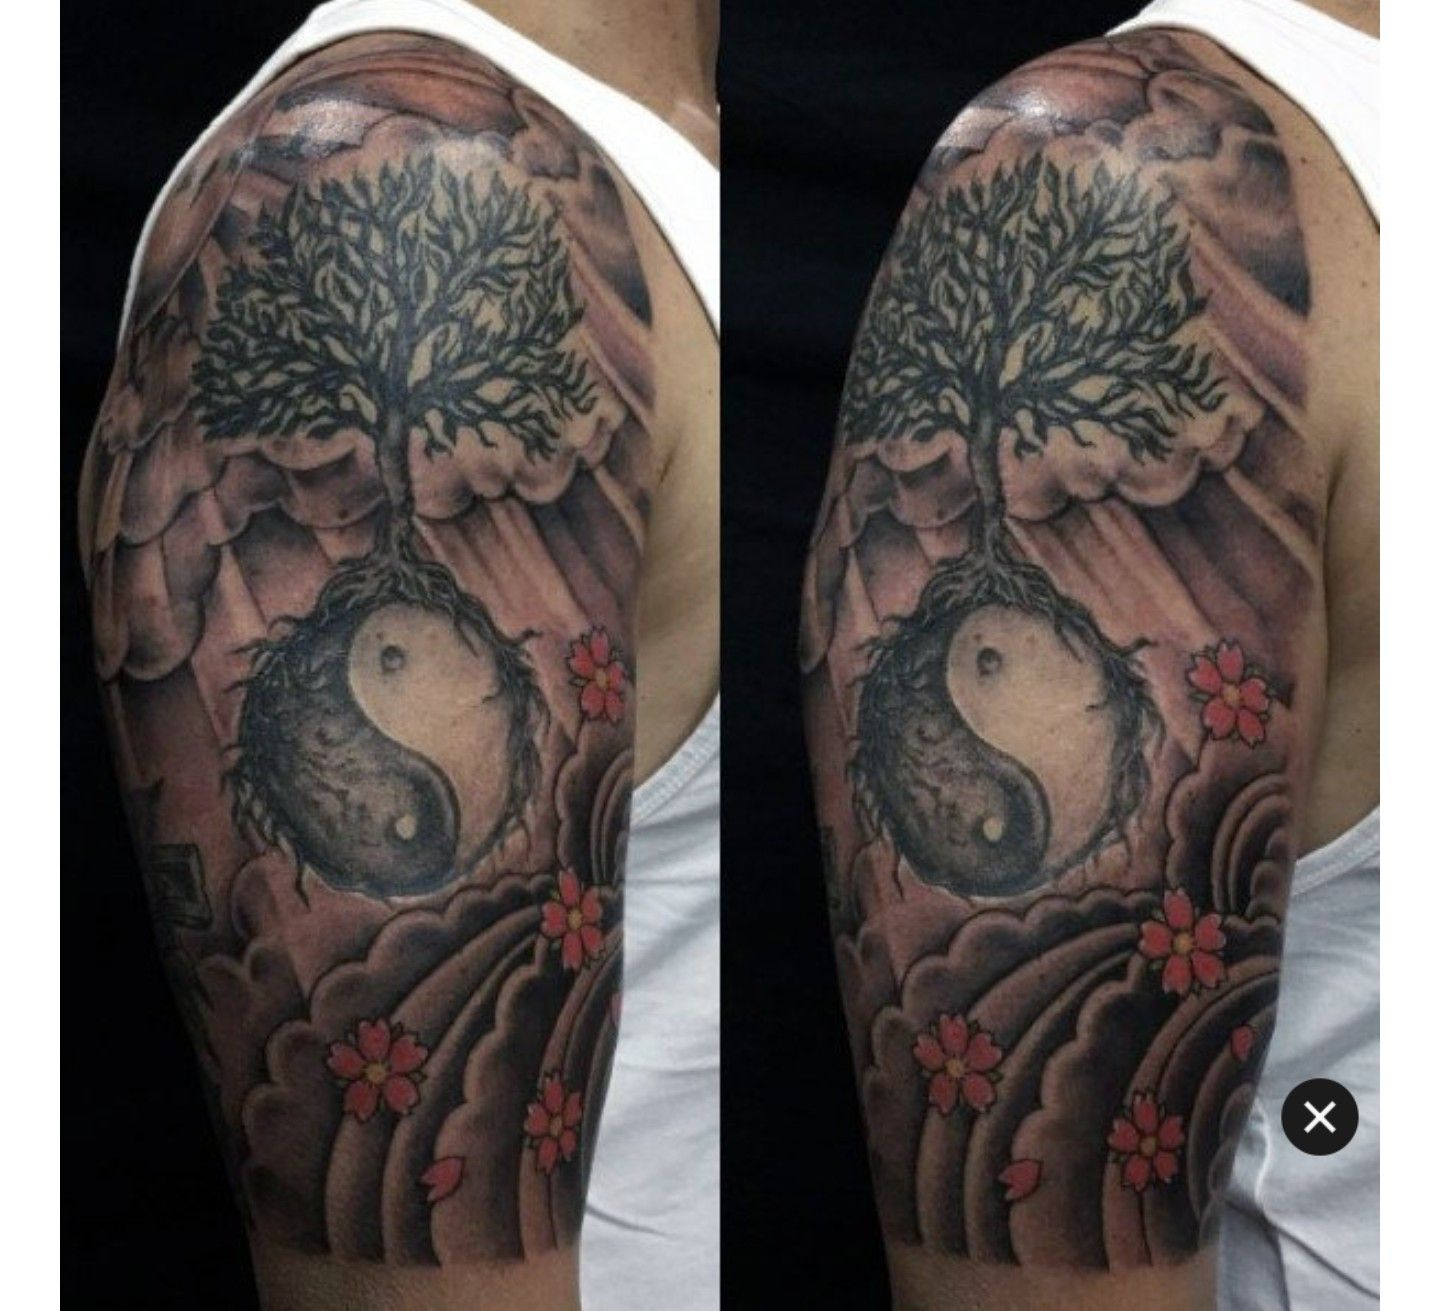 Pin by Henry cellini on Tattoos Yin yang tattoos, Life